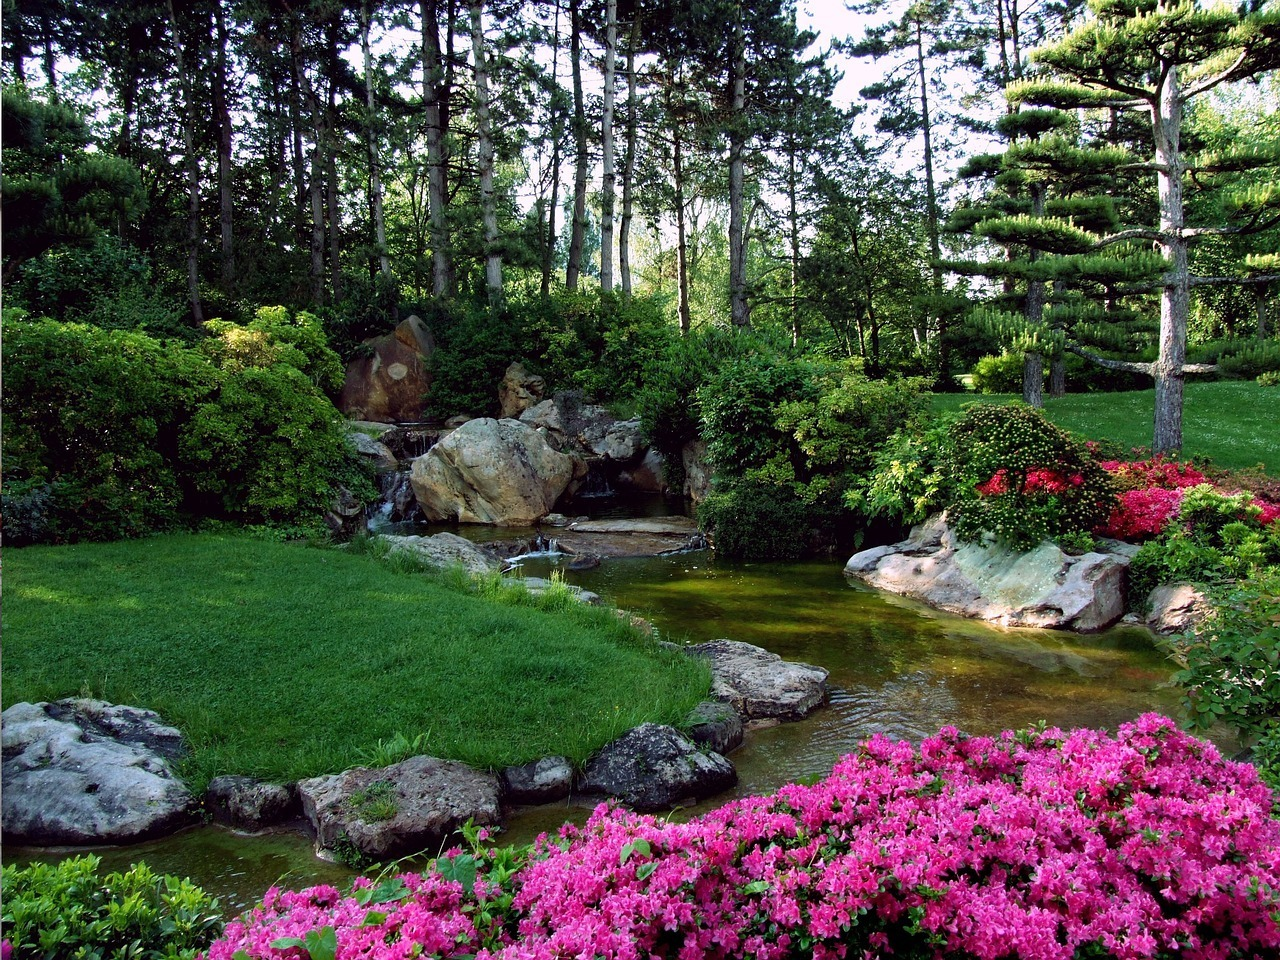 beautiful garden with green grass and pink flowers